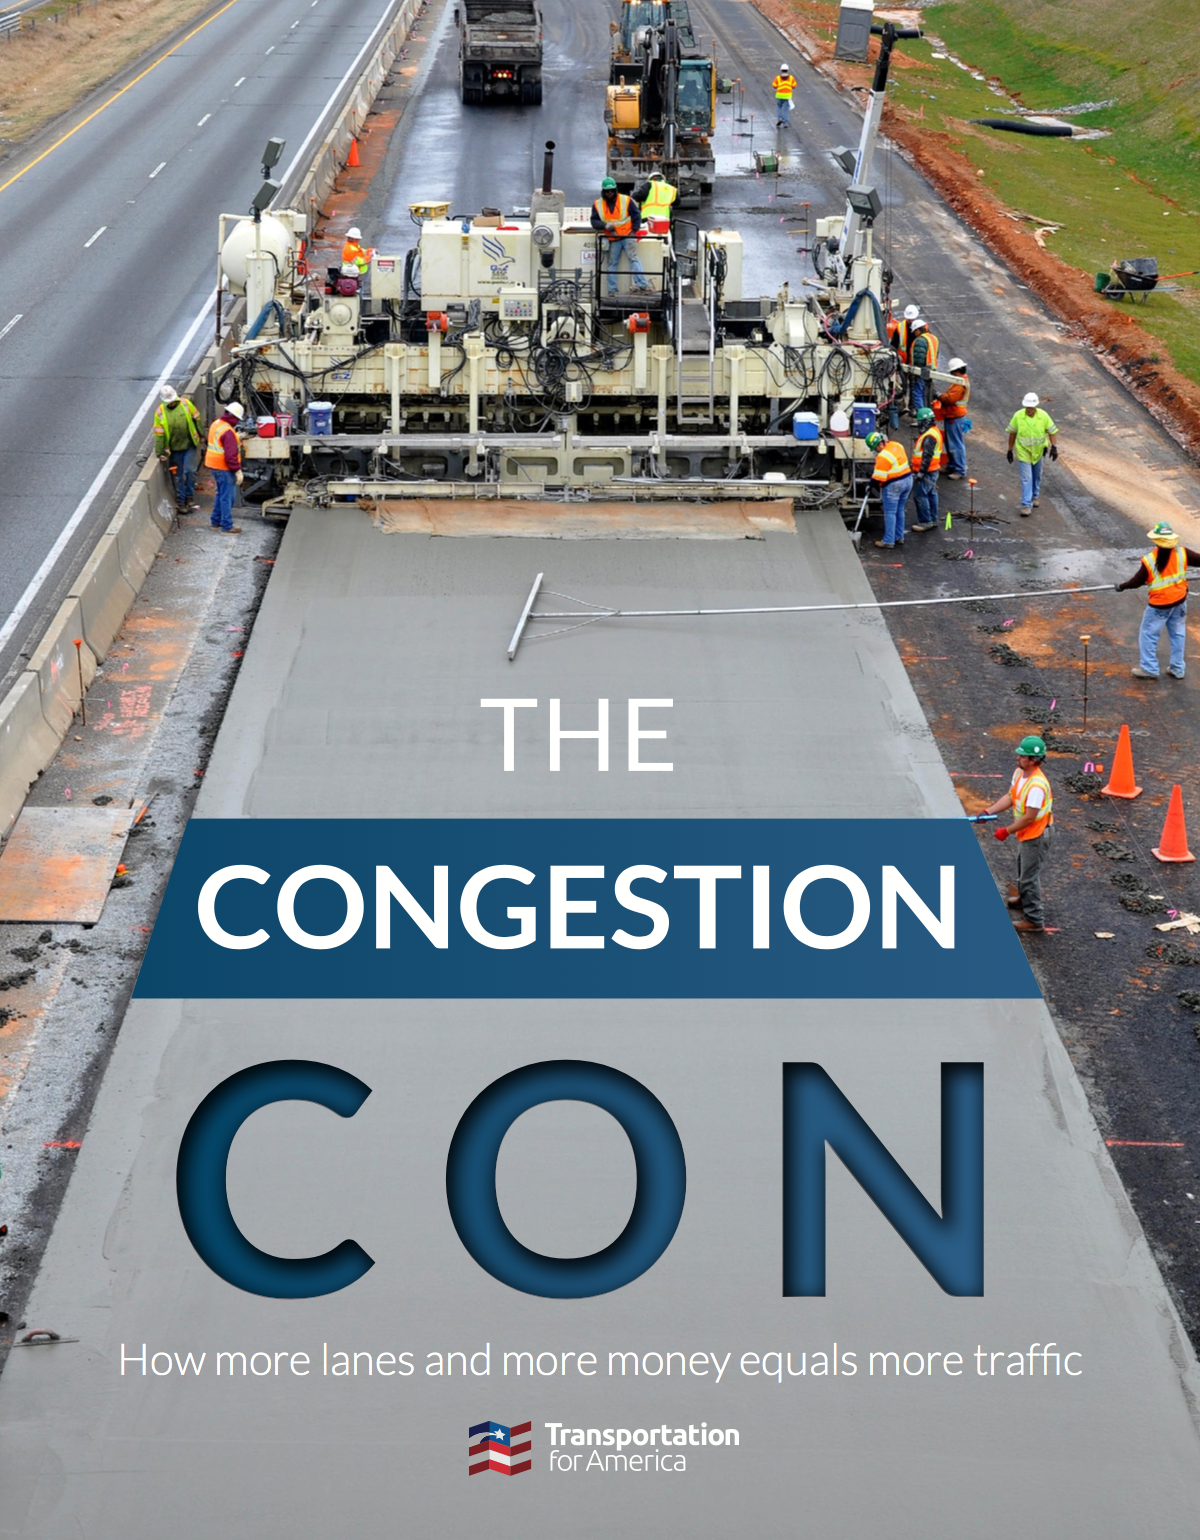 The Congestion Con: How more lanes and more money equals more traffic